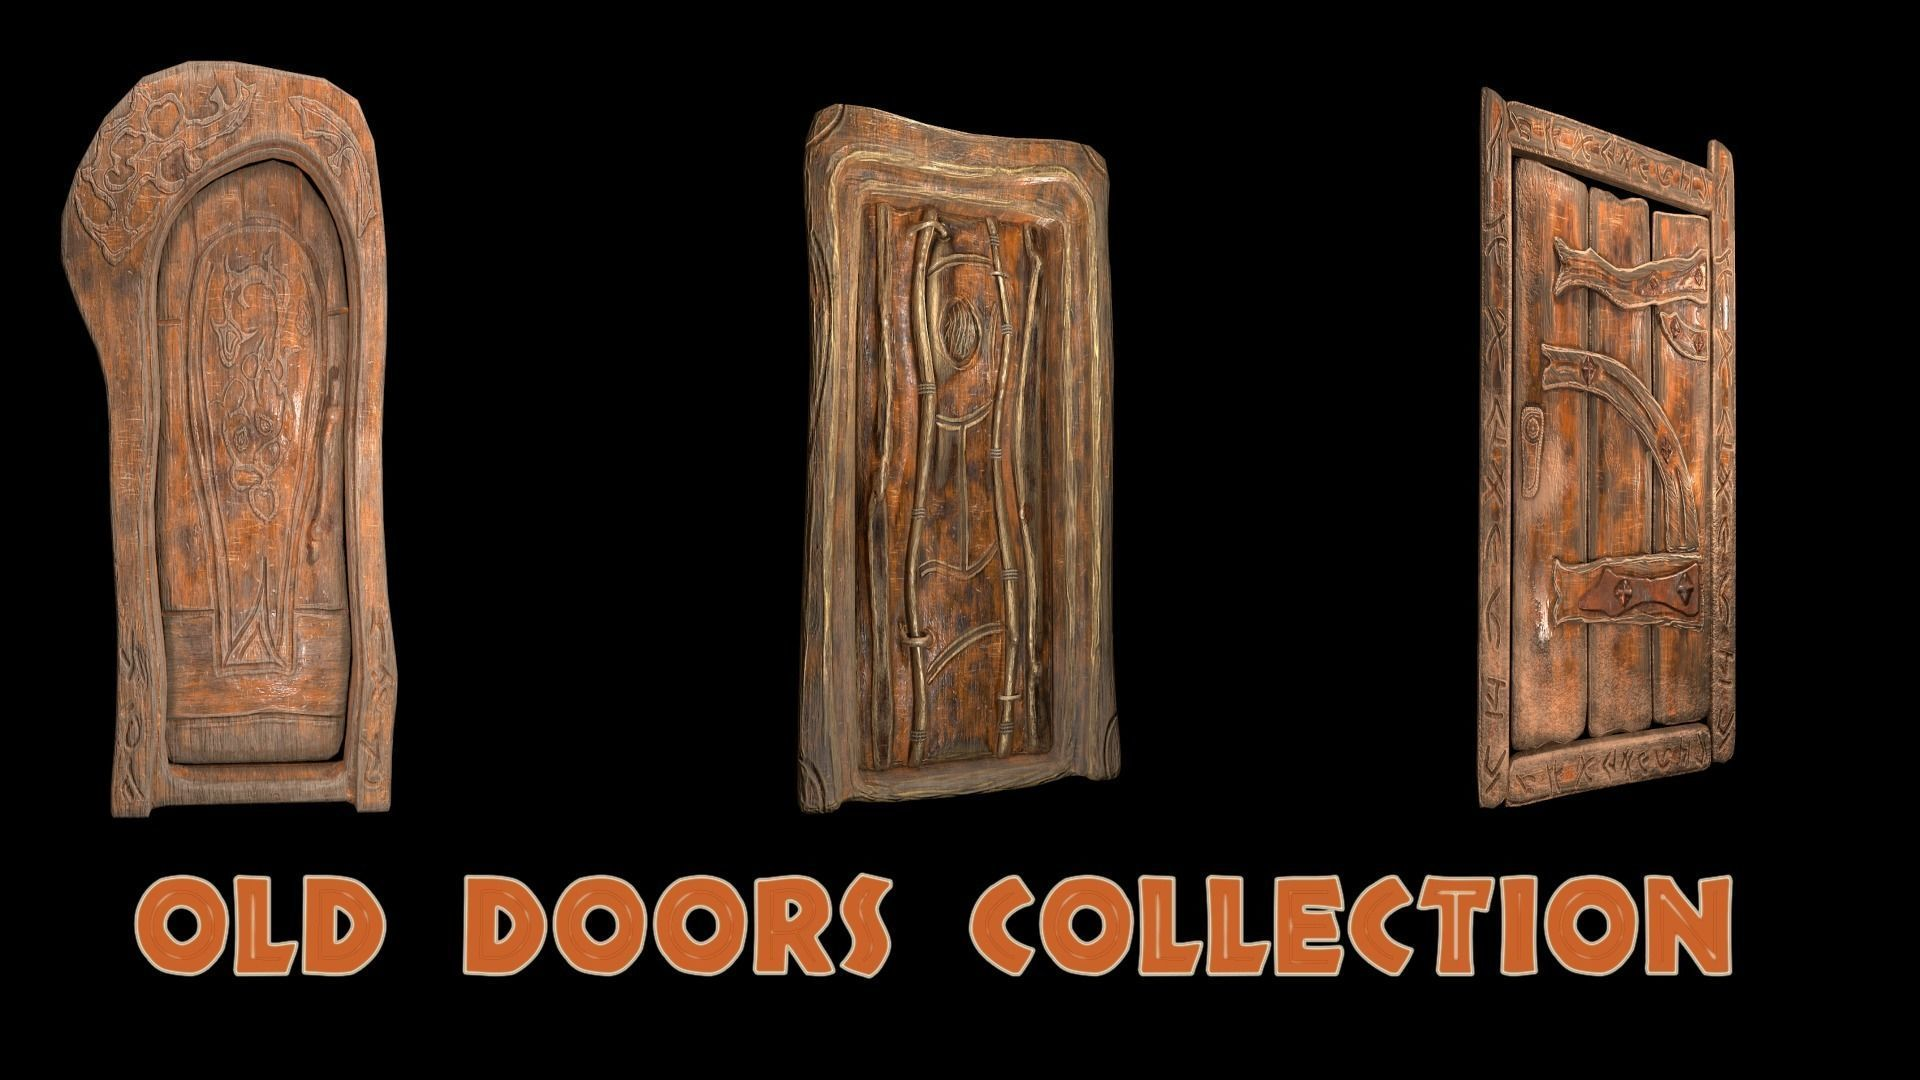 Old doors collection